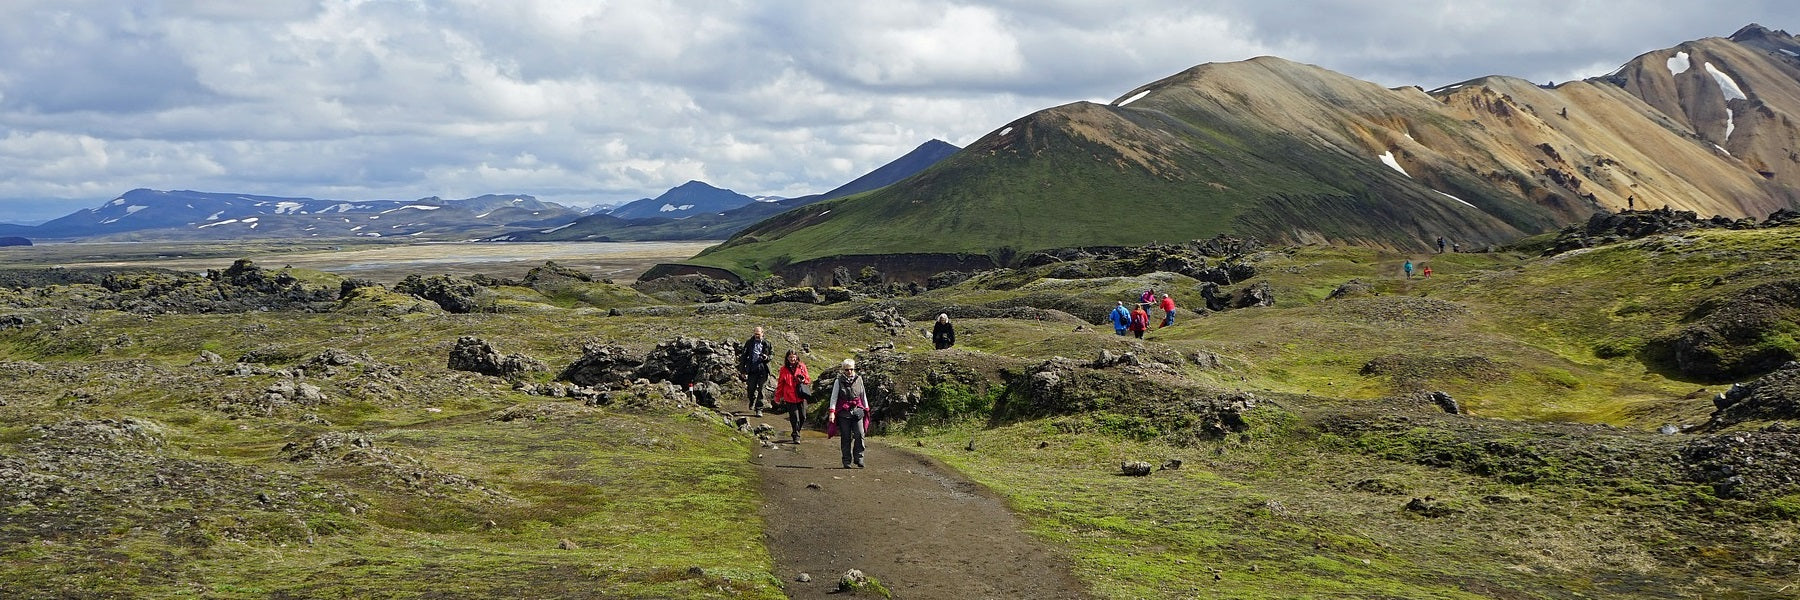 Iceland Trail Running Tour